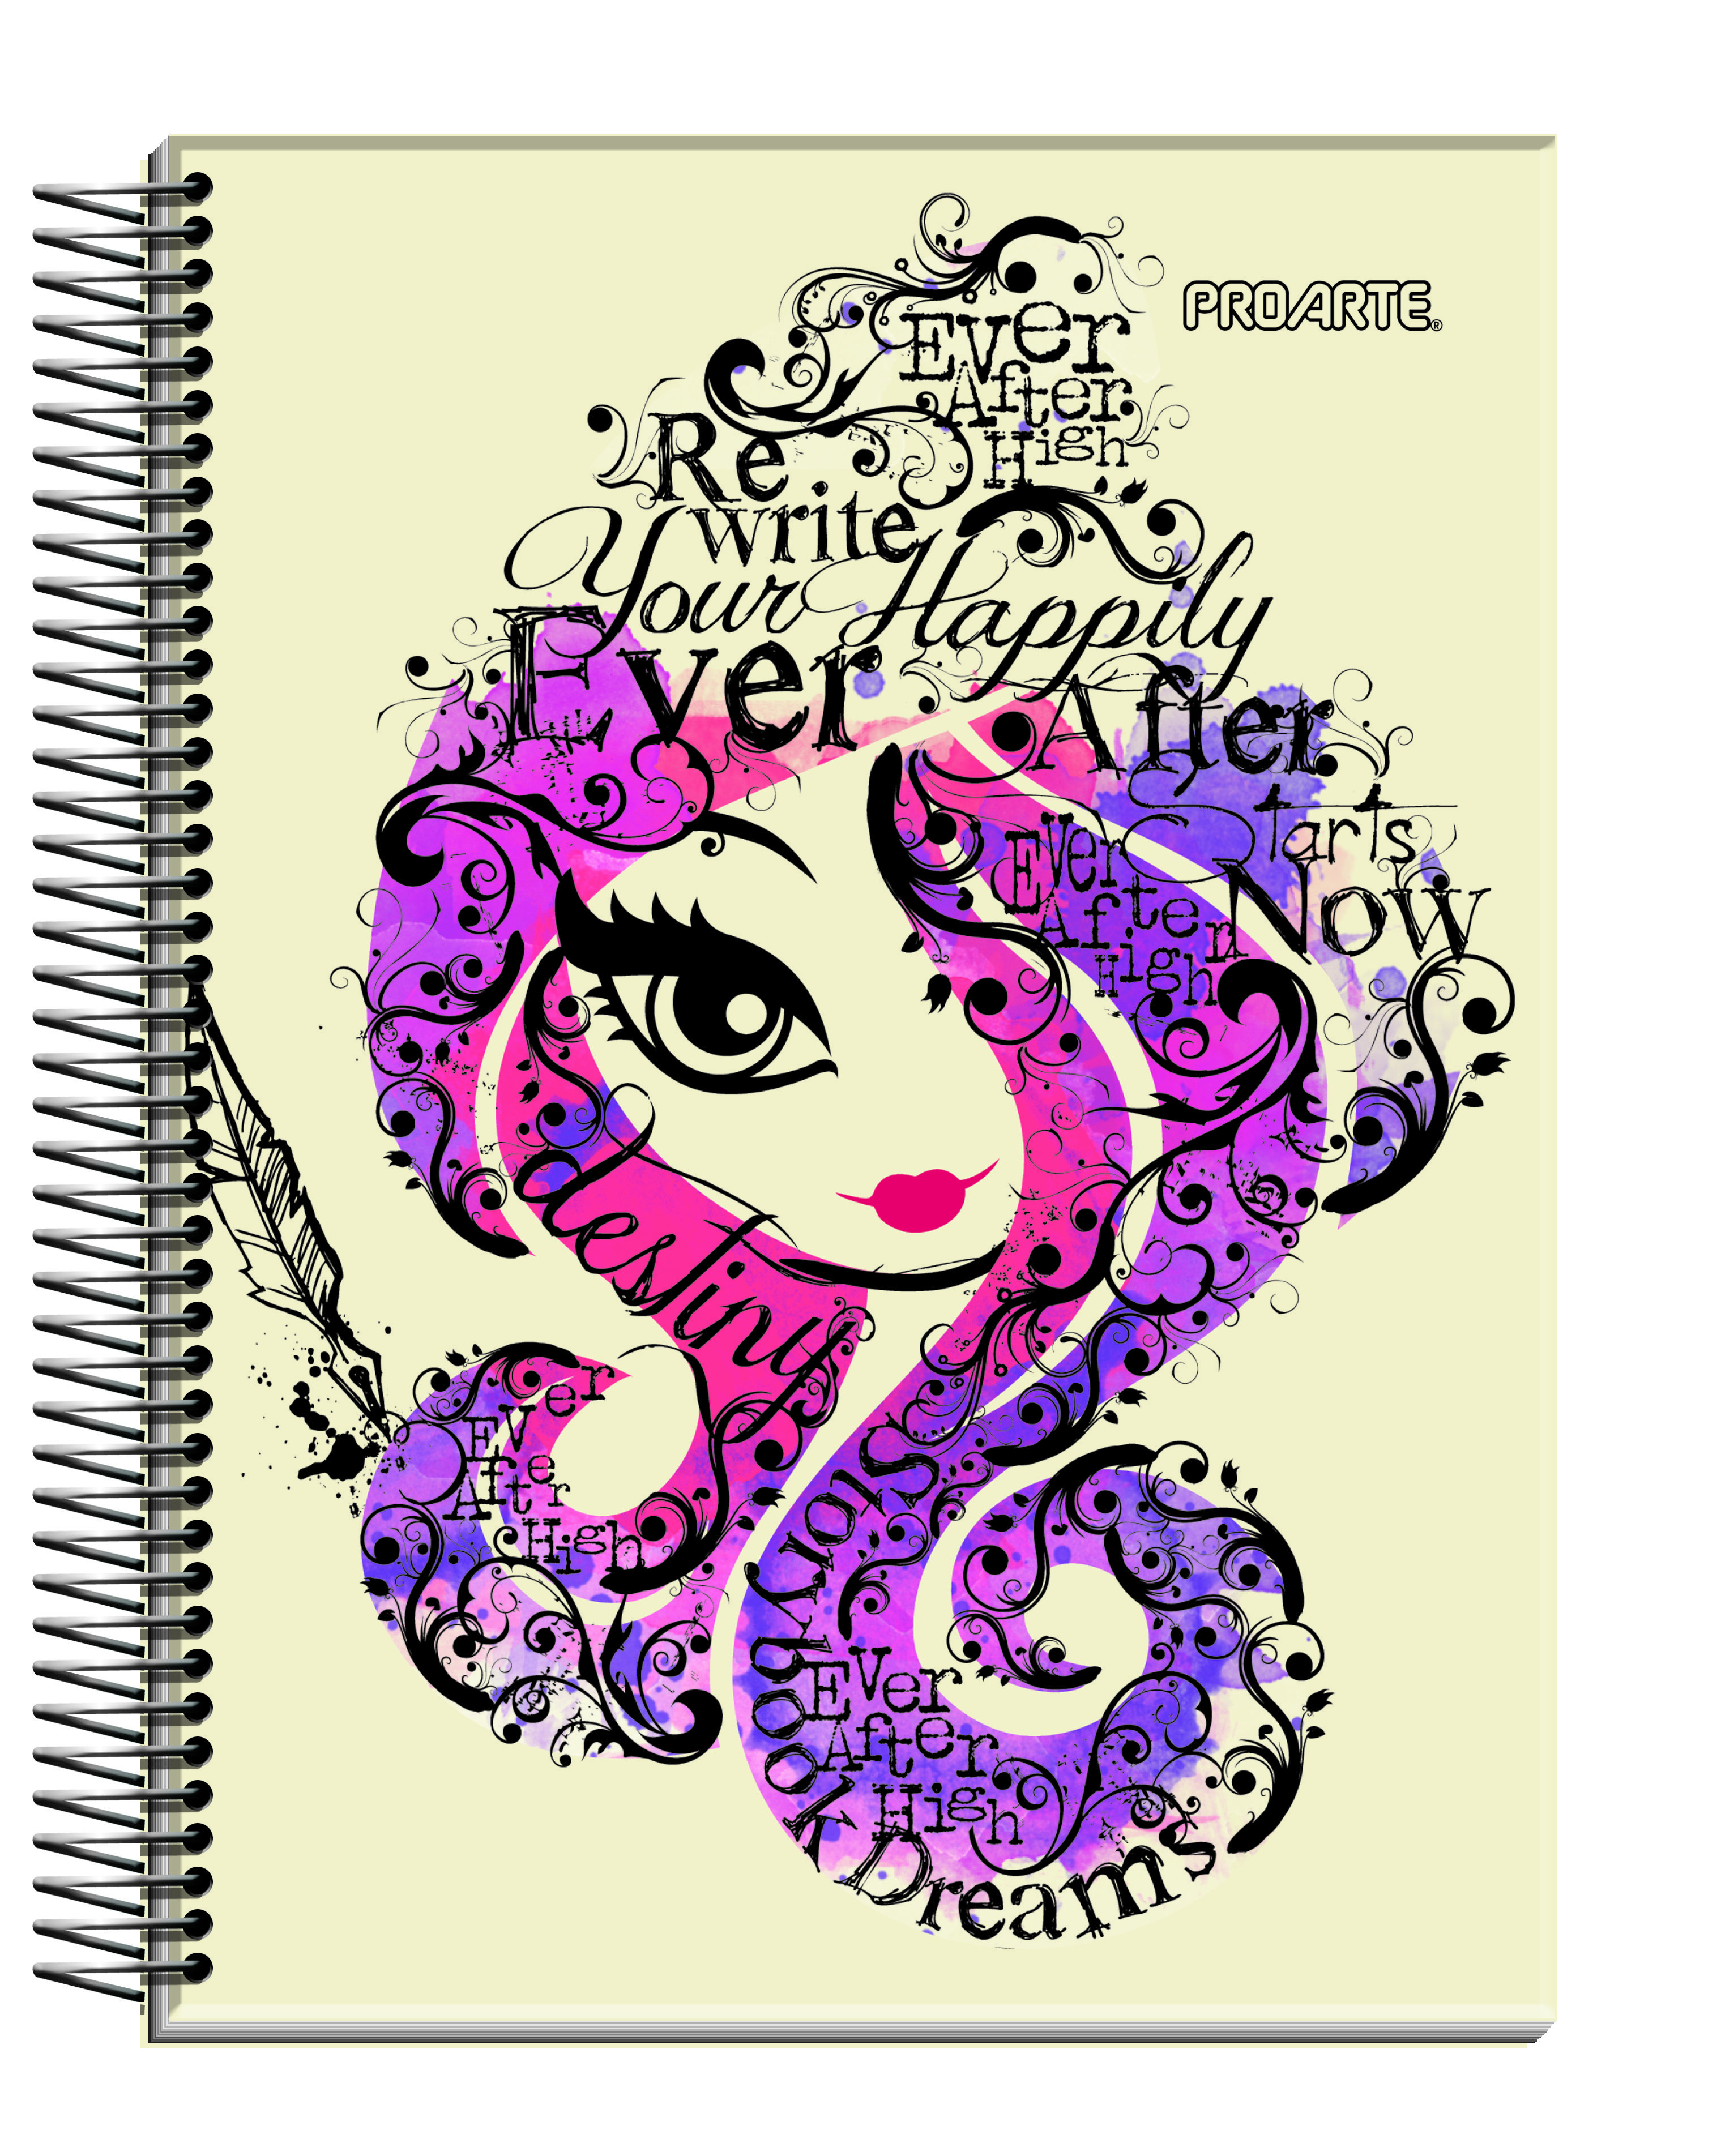 Find out you are most like such character in      ever after high quiz.com.     page . I'm most like Maddie